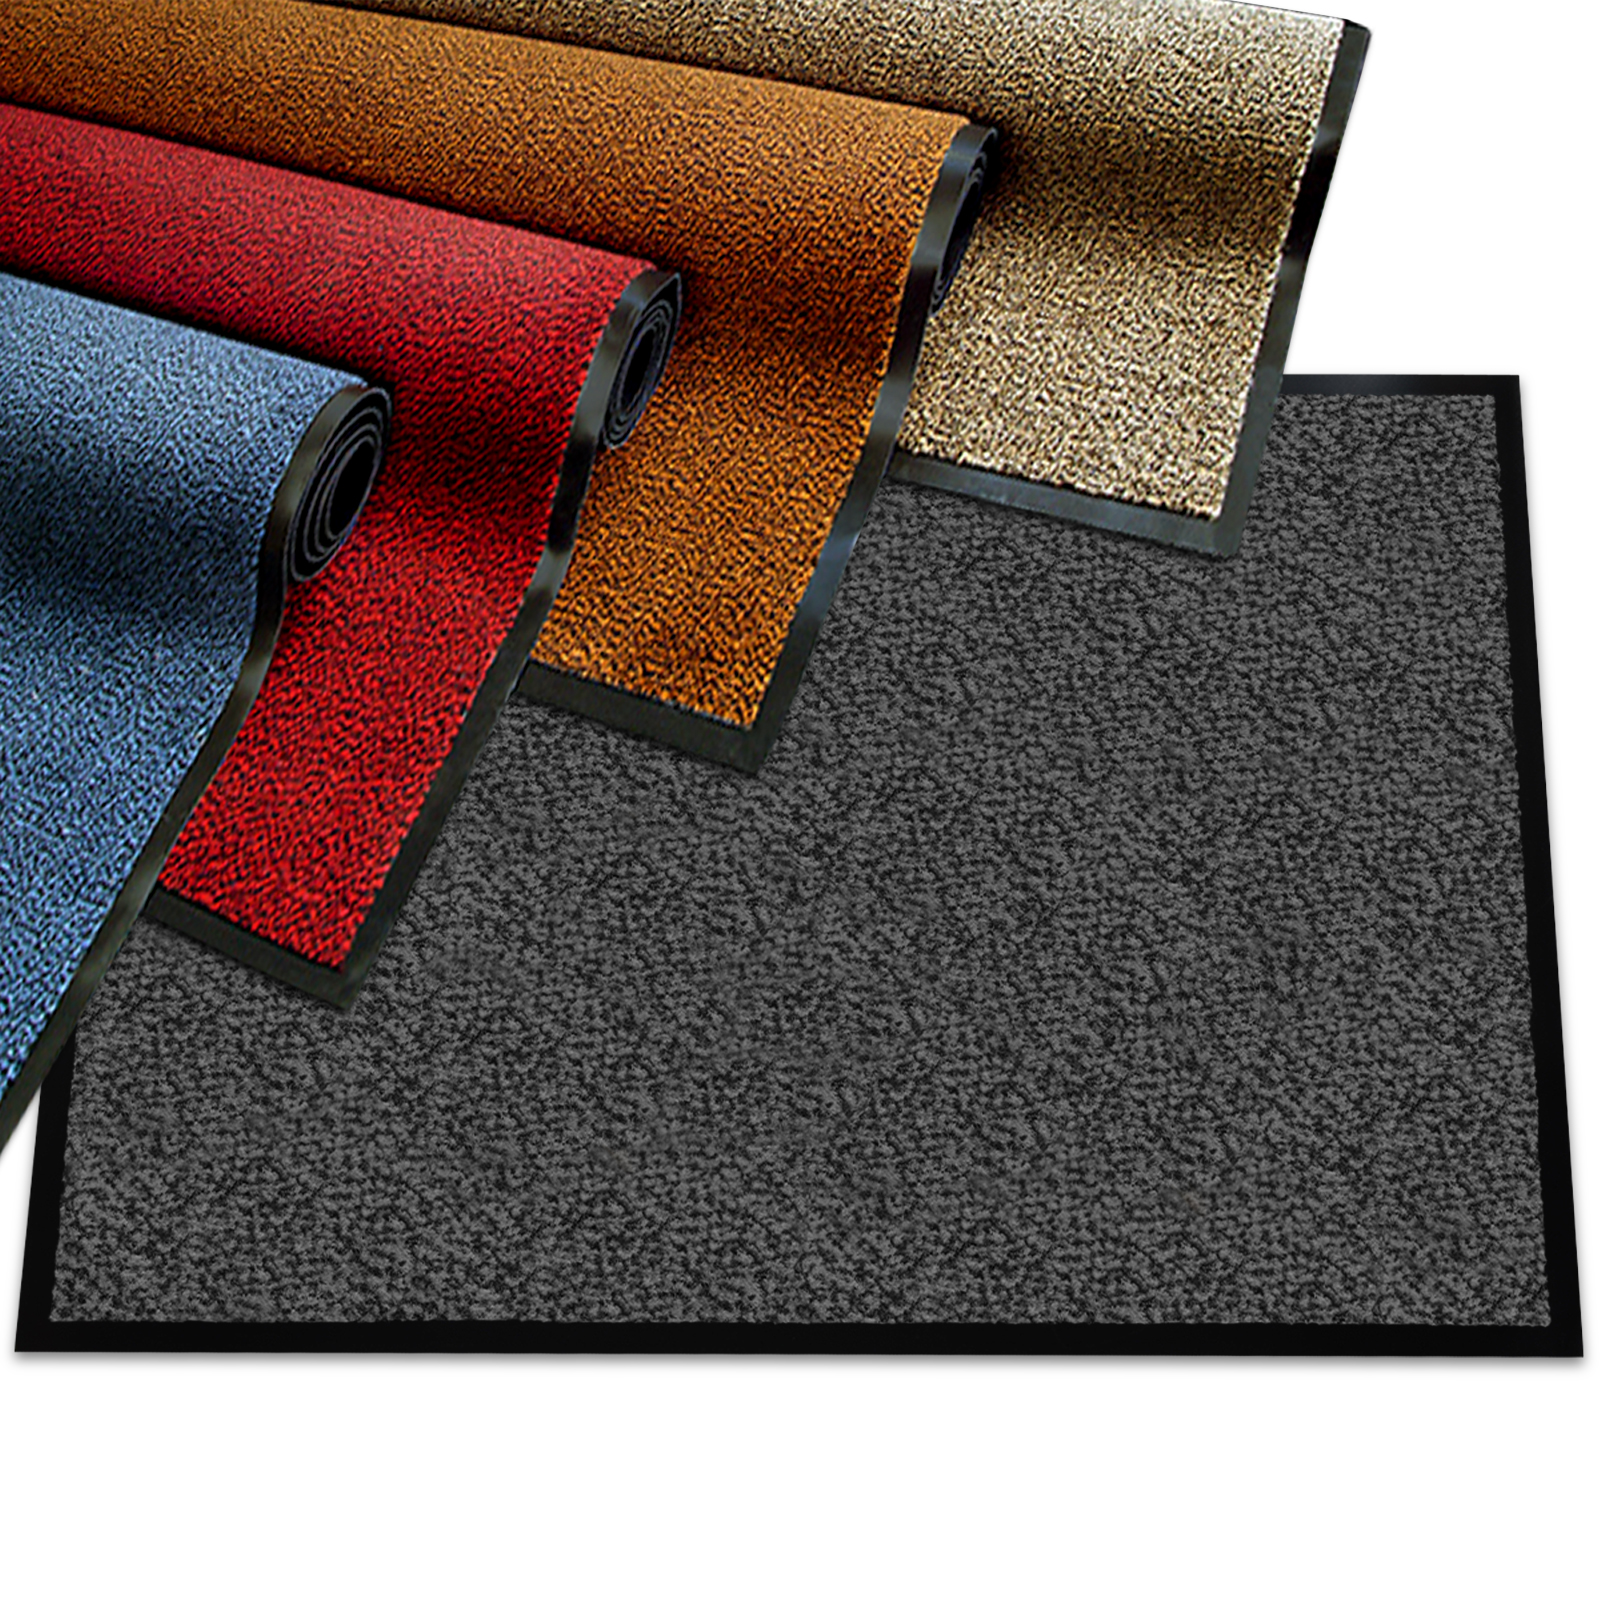 "Premium Door Mat | Entryway Rug - Very Good Comparison Test Score Rating (A-/1.3) | Ideal as Entrance Mat or Outdoor Carpet | Charcoal Gray - 24"" x 36"""